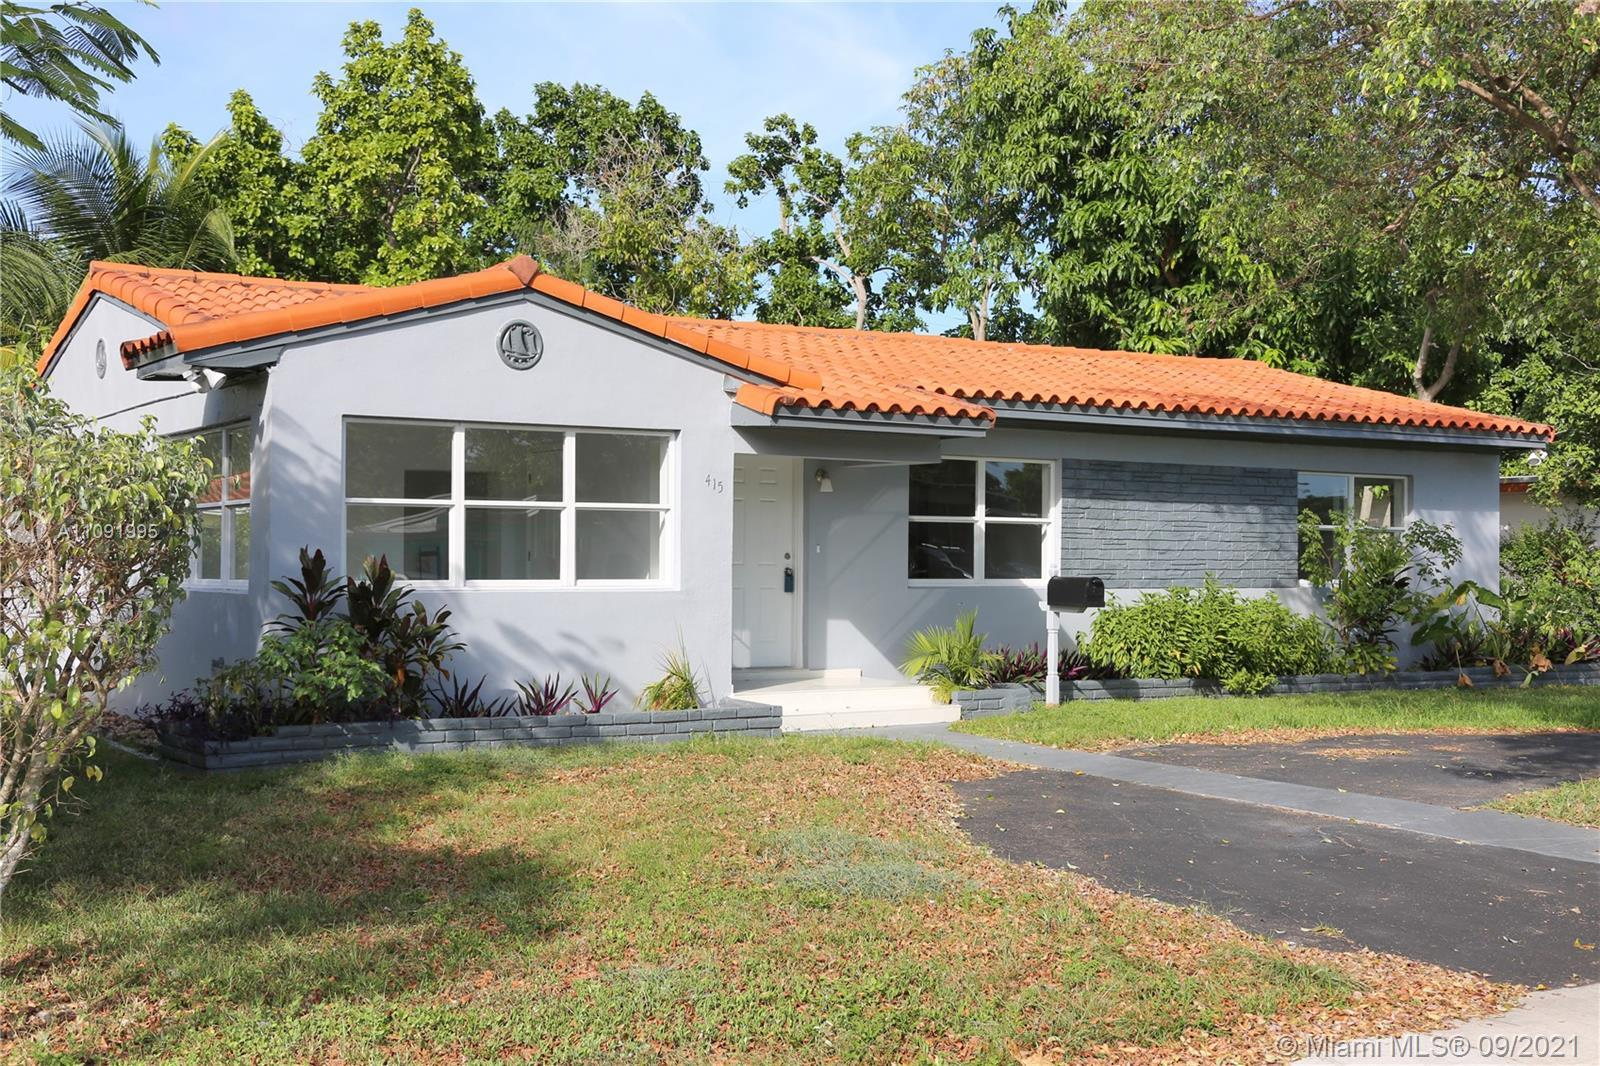 No HOA Single Home.  3 bedrooms and 2 bathroom with lots of room to grow. Super sized property with